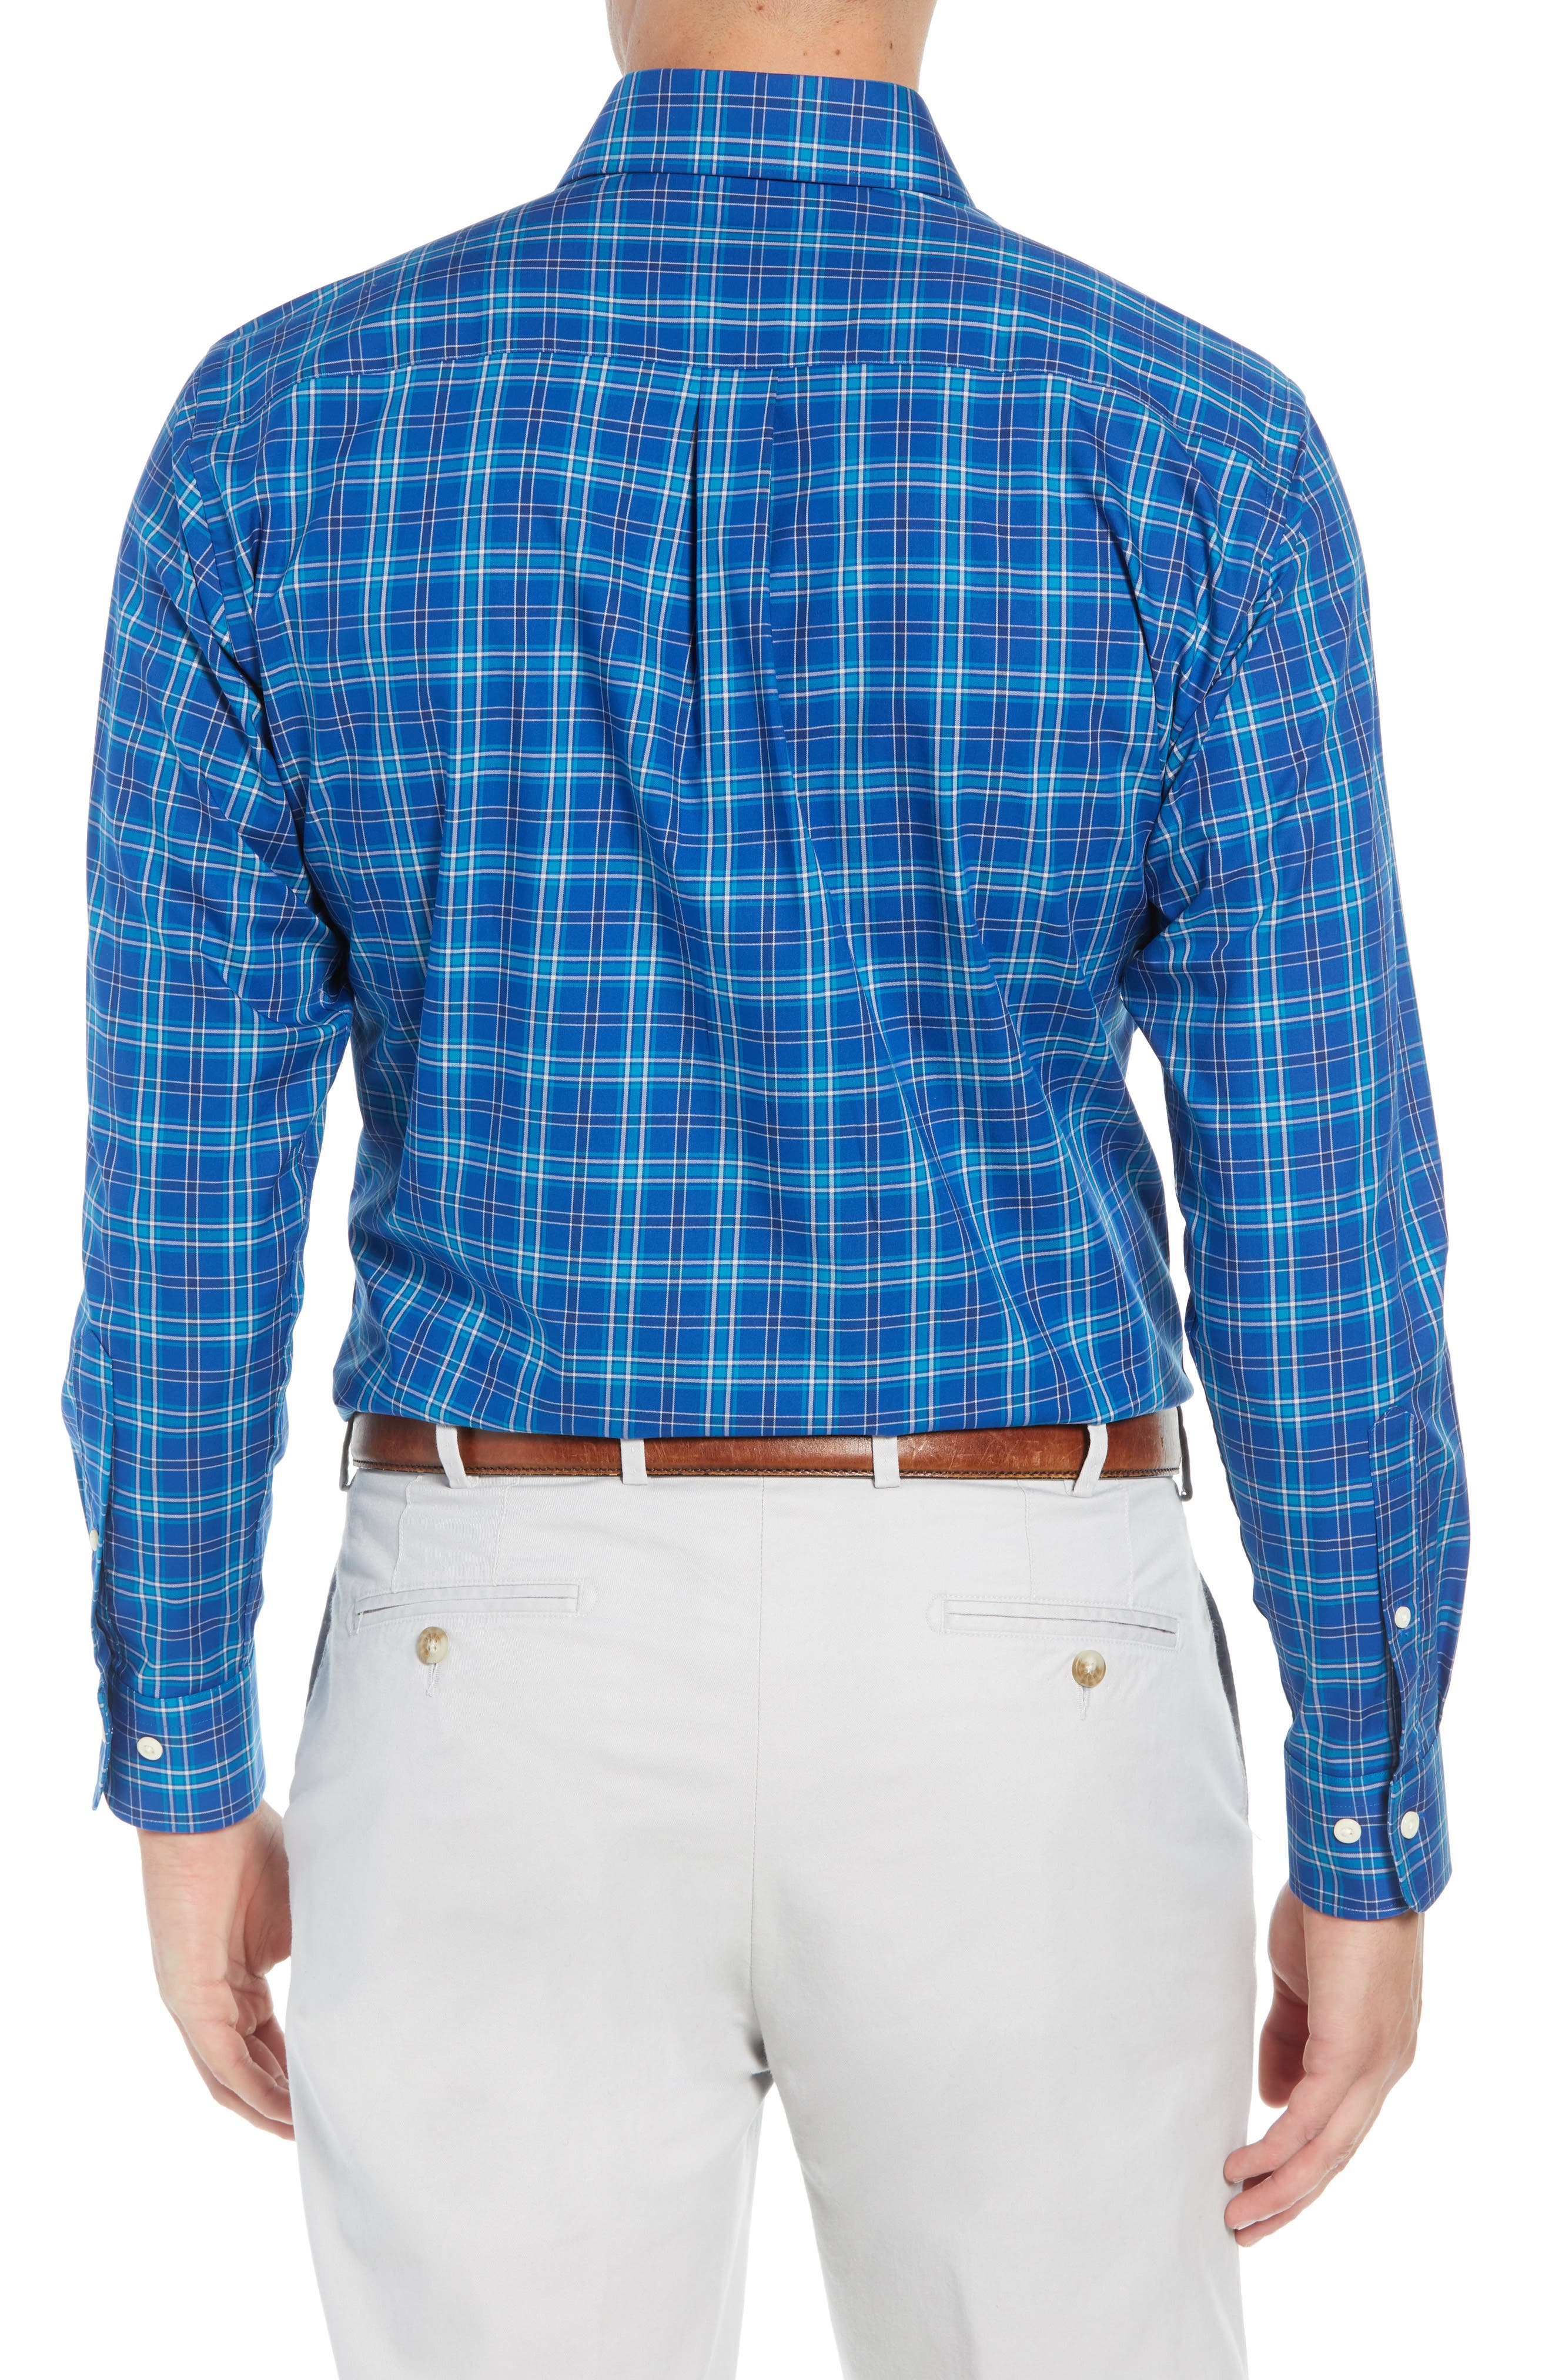 Crown Ease Salamanca Regular Fit Plaid Sport Shirt,                             Alternate thumbnail 3, color,                             BLUE